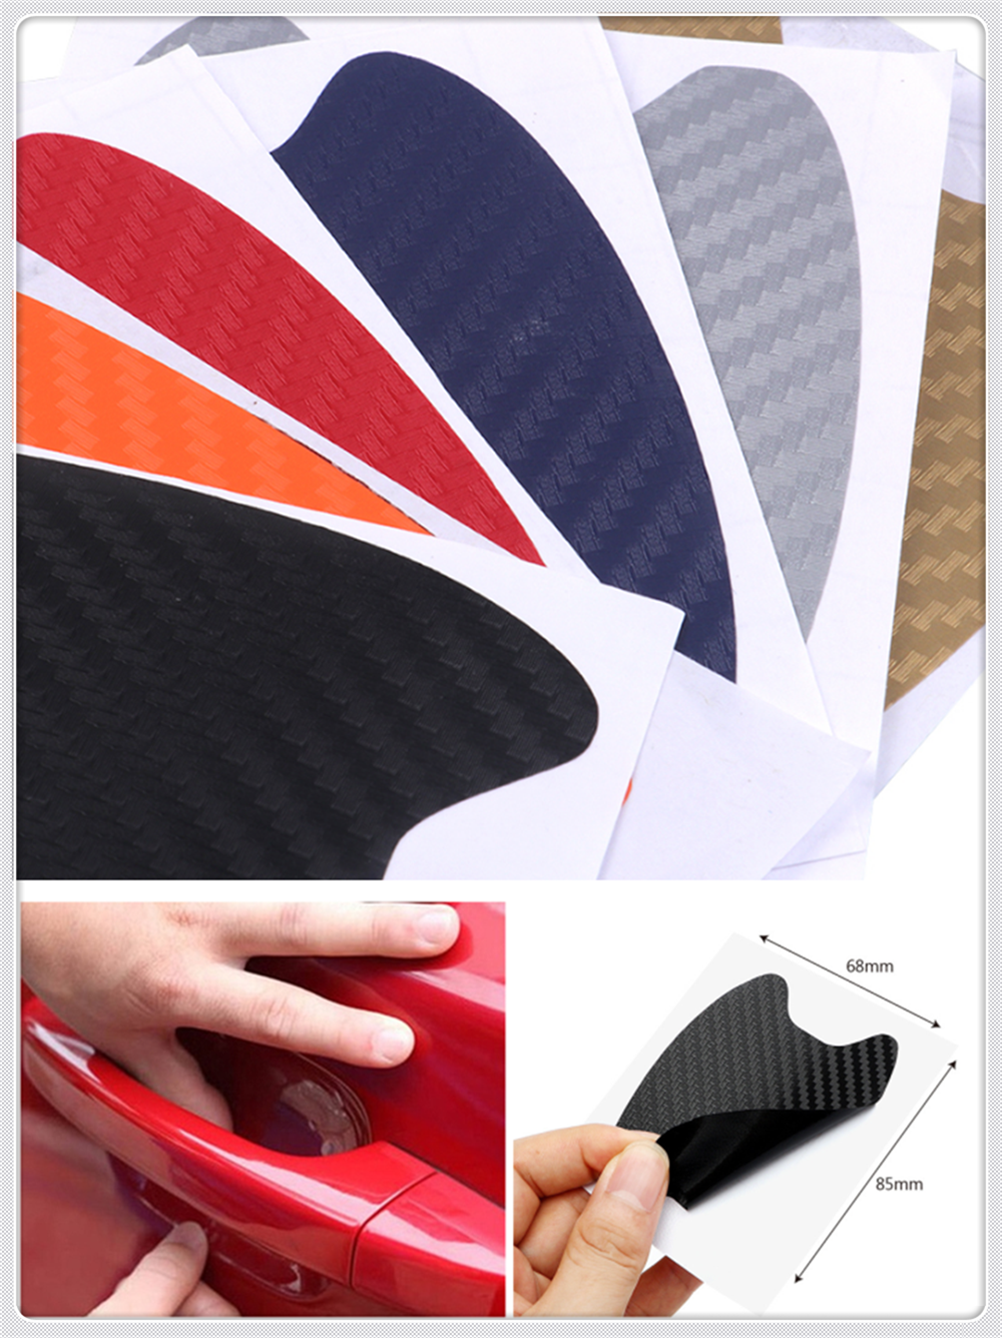 4pcs car accessories 3D carbon fiber <font><b>door</b></font> <font><b>handle</b></font> wrist scratch stickers for <font><b>Peugeot</b></font> 206 307 406 407 207 <font><b>208</b></font> 308 508 2008 3008 image